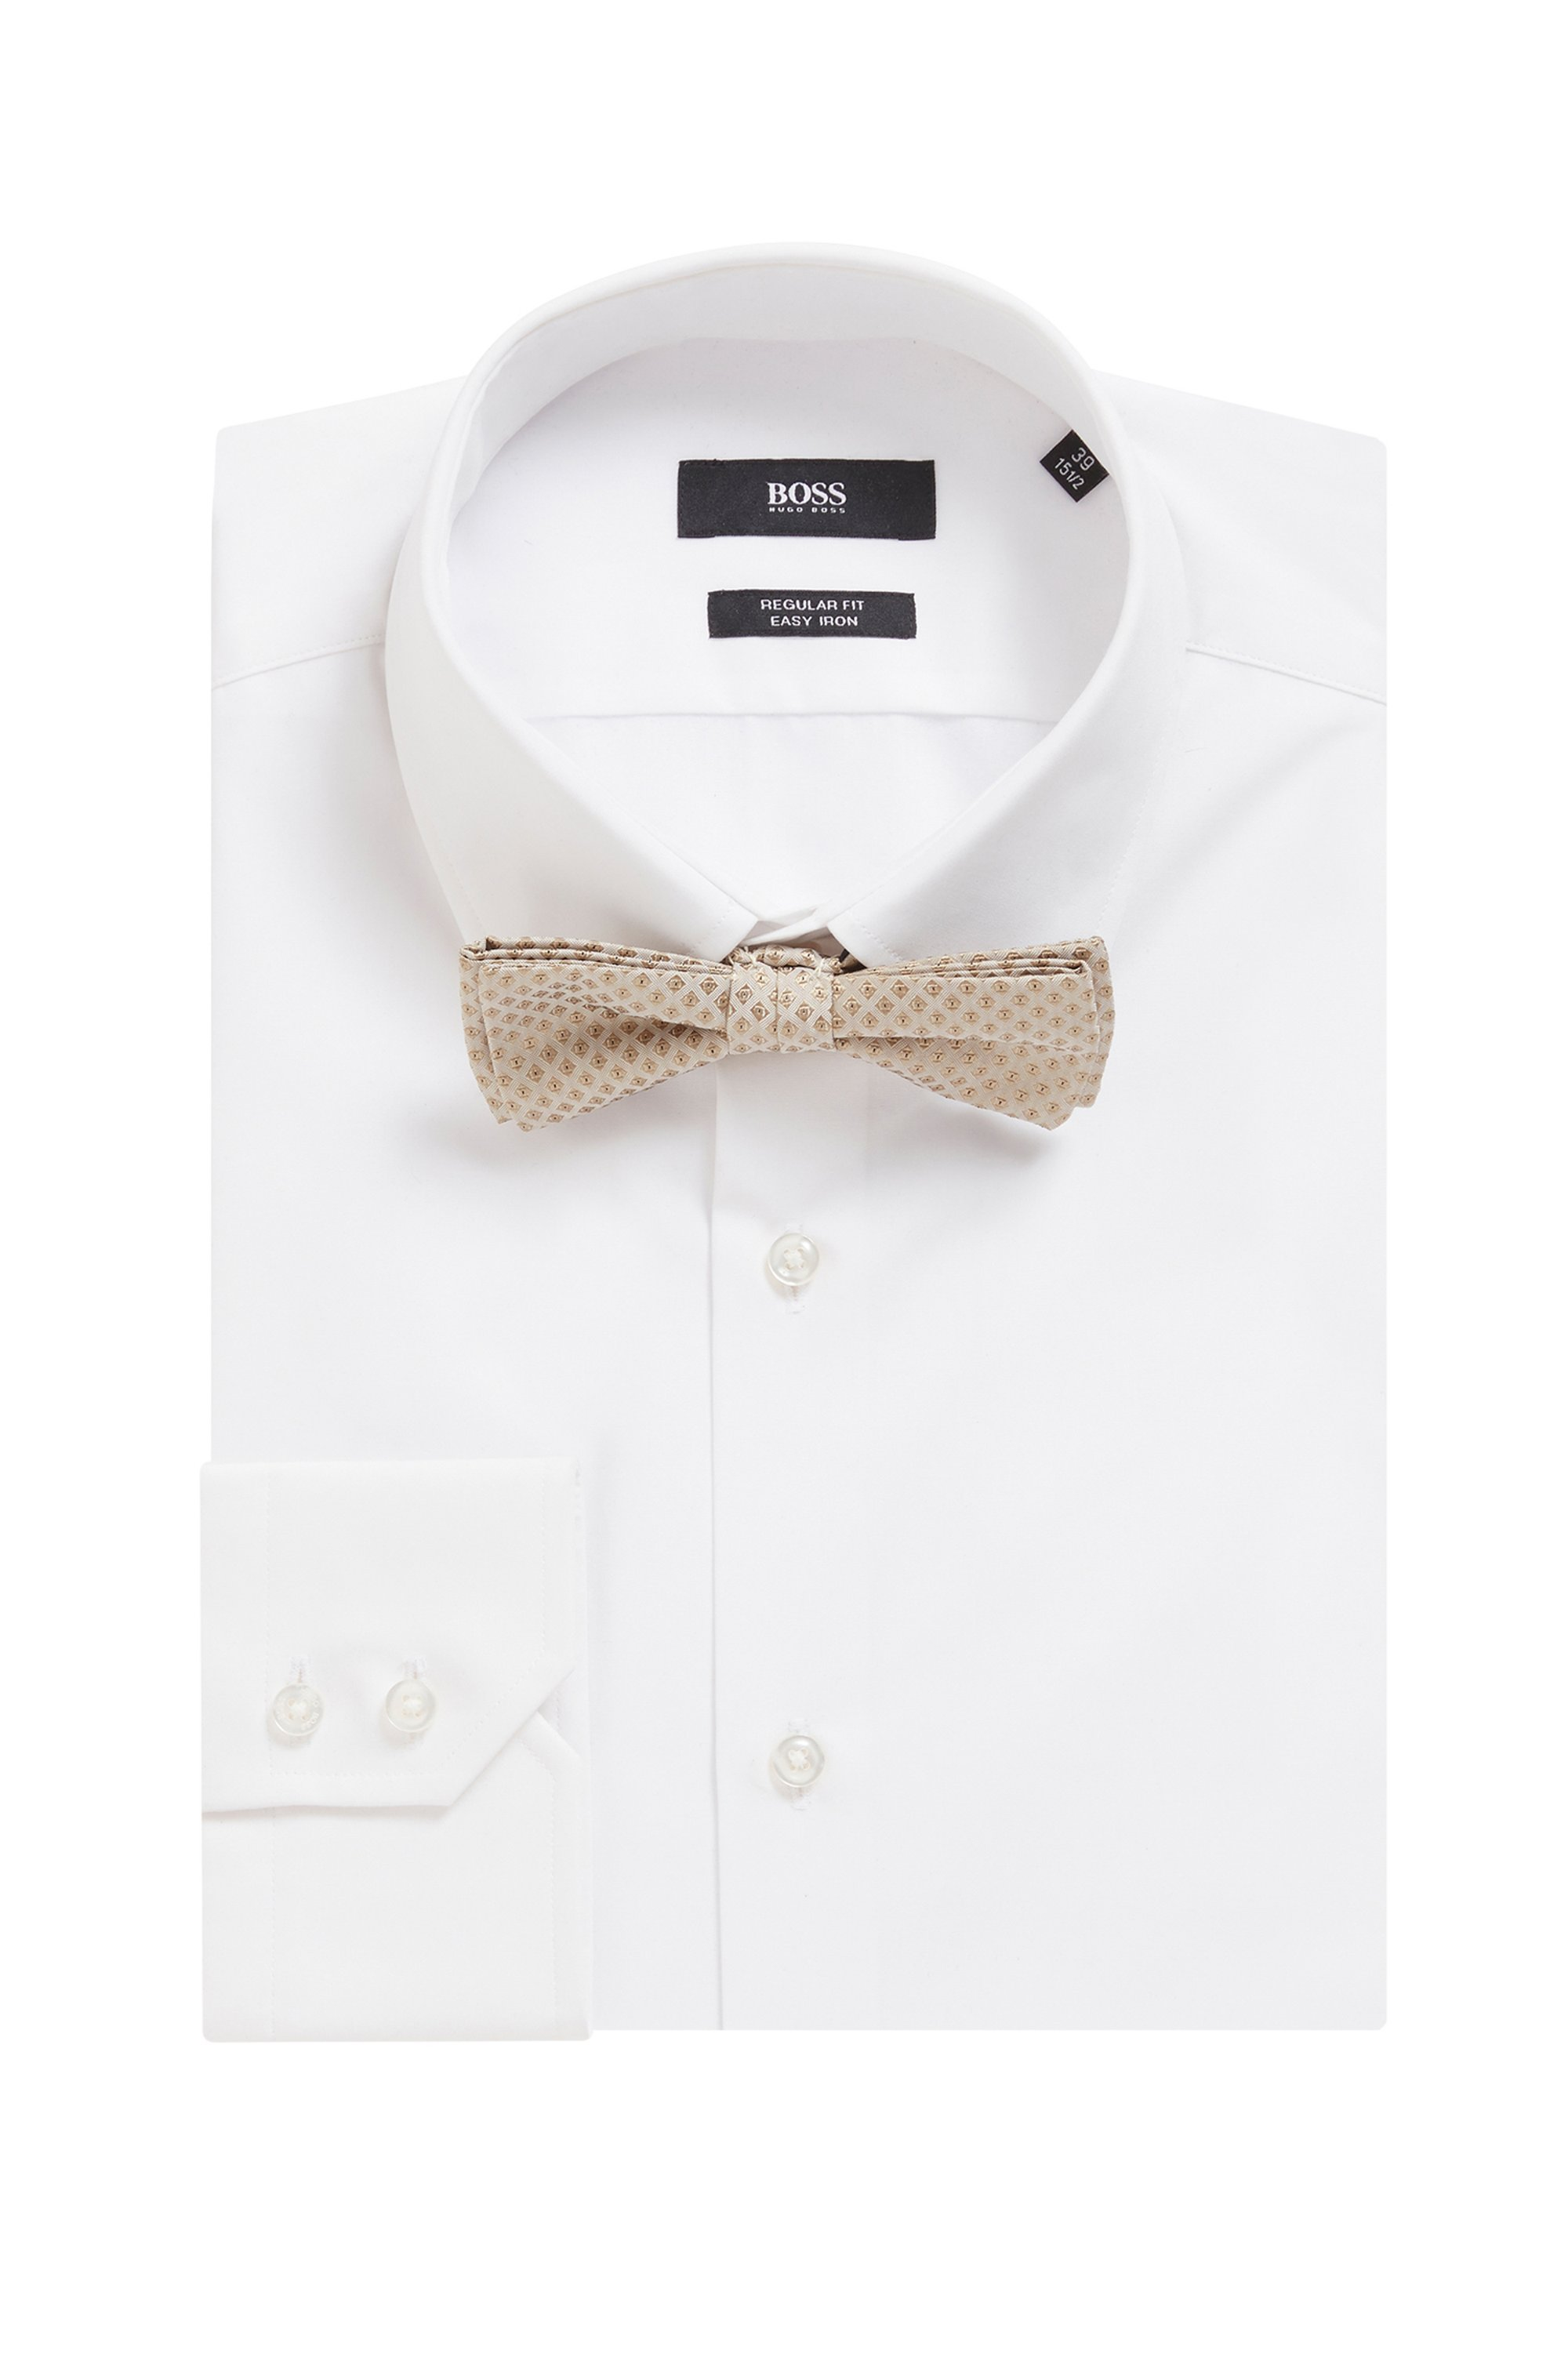 Micro-patterned bow tie in silk jacquard